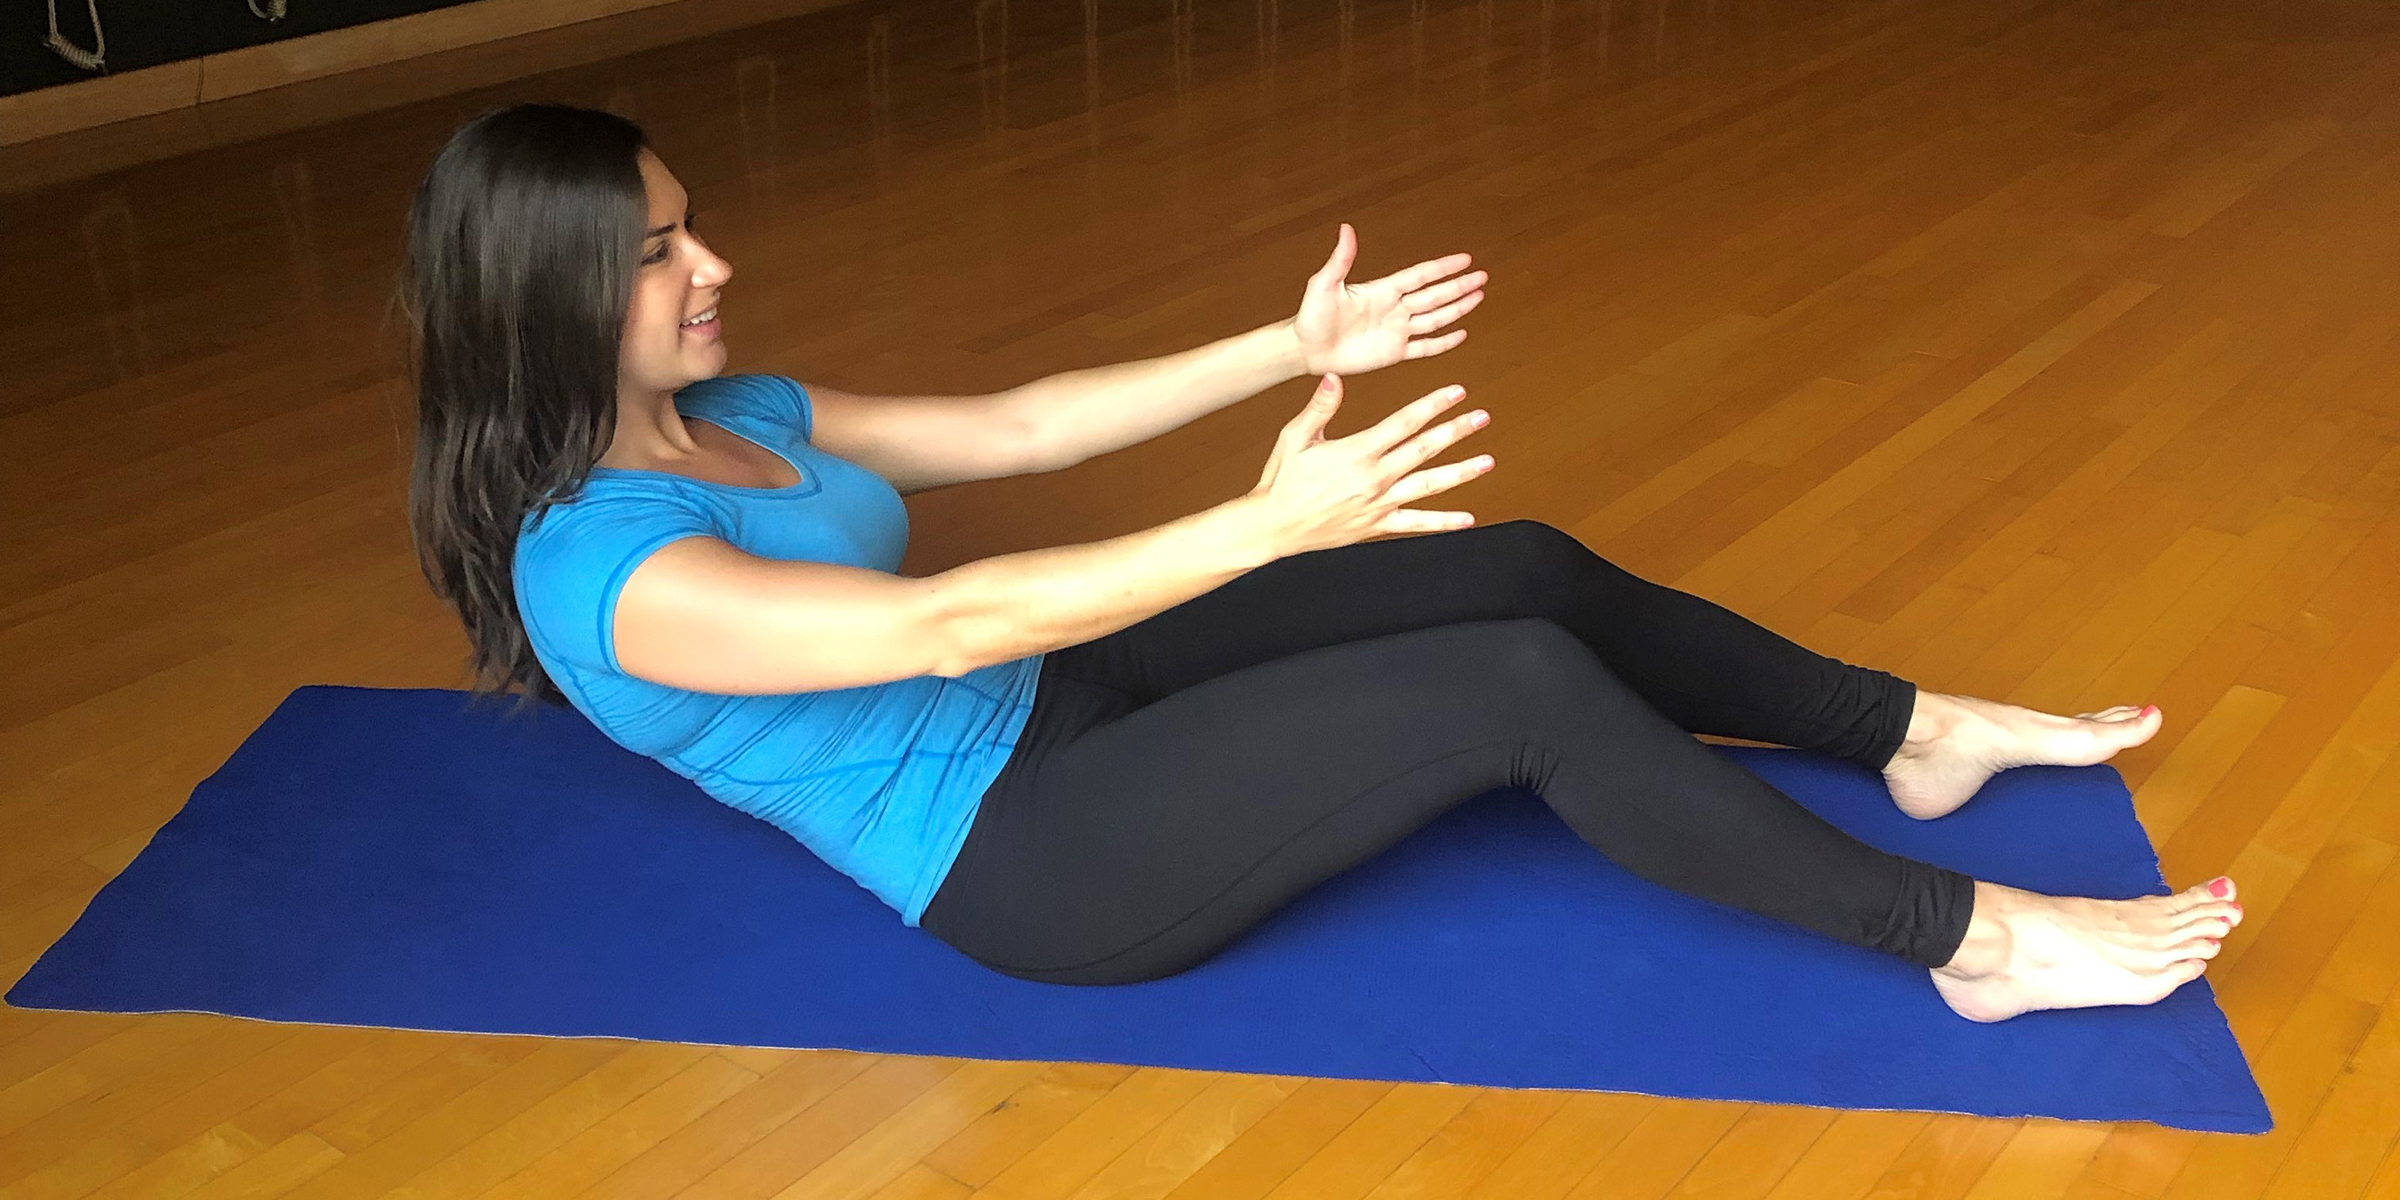 Try these Pilates poses to relieve back pain in 5 minutes